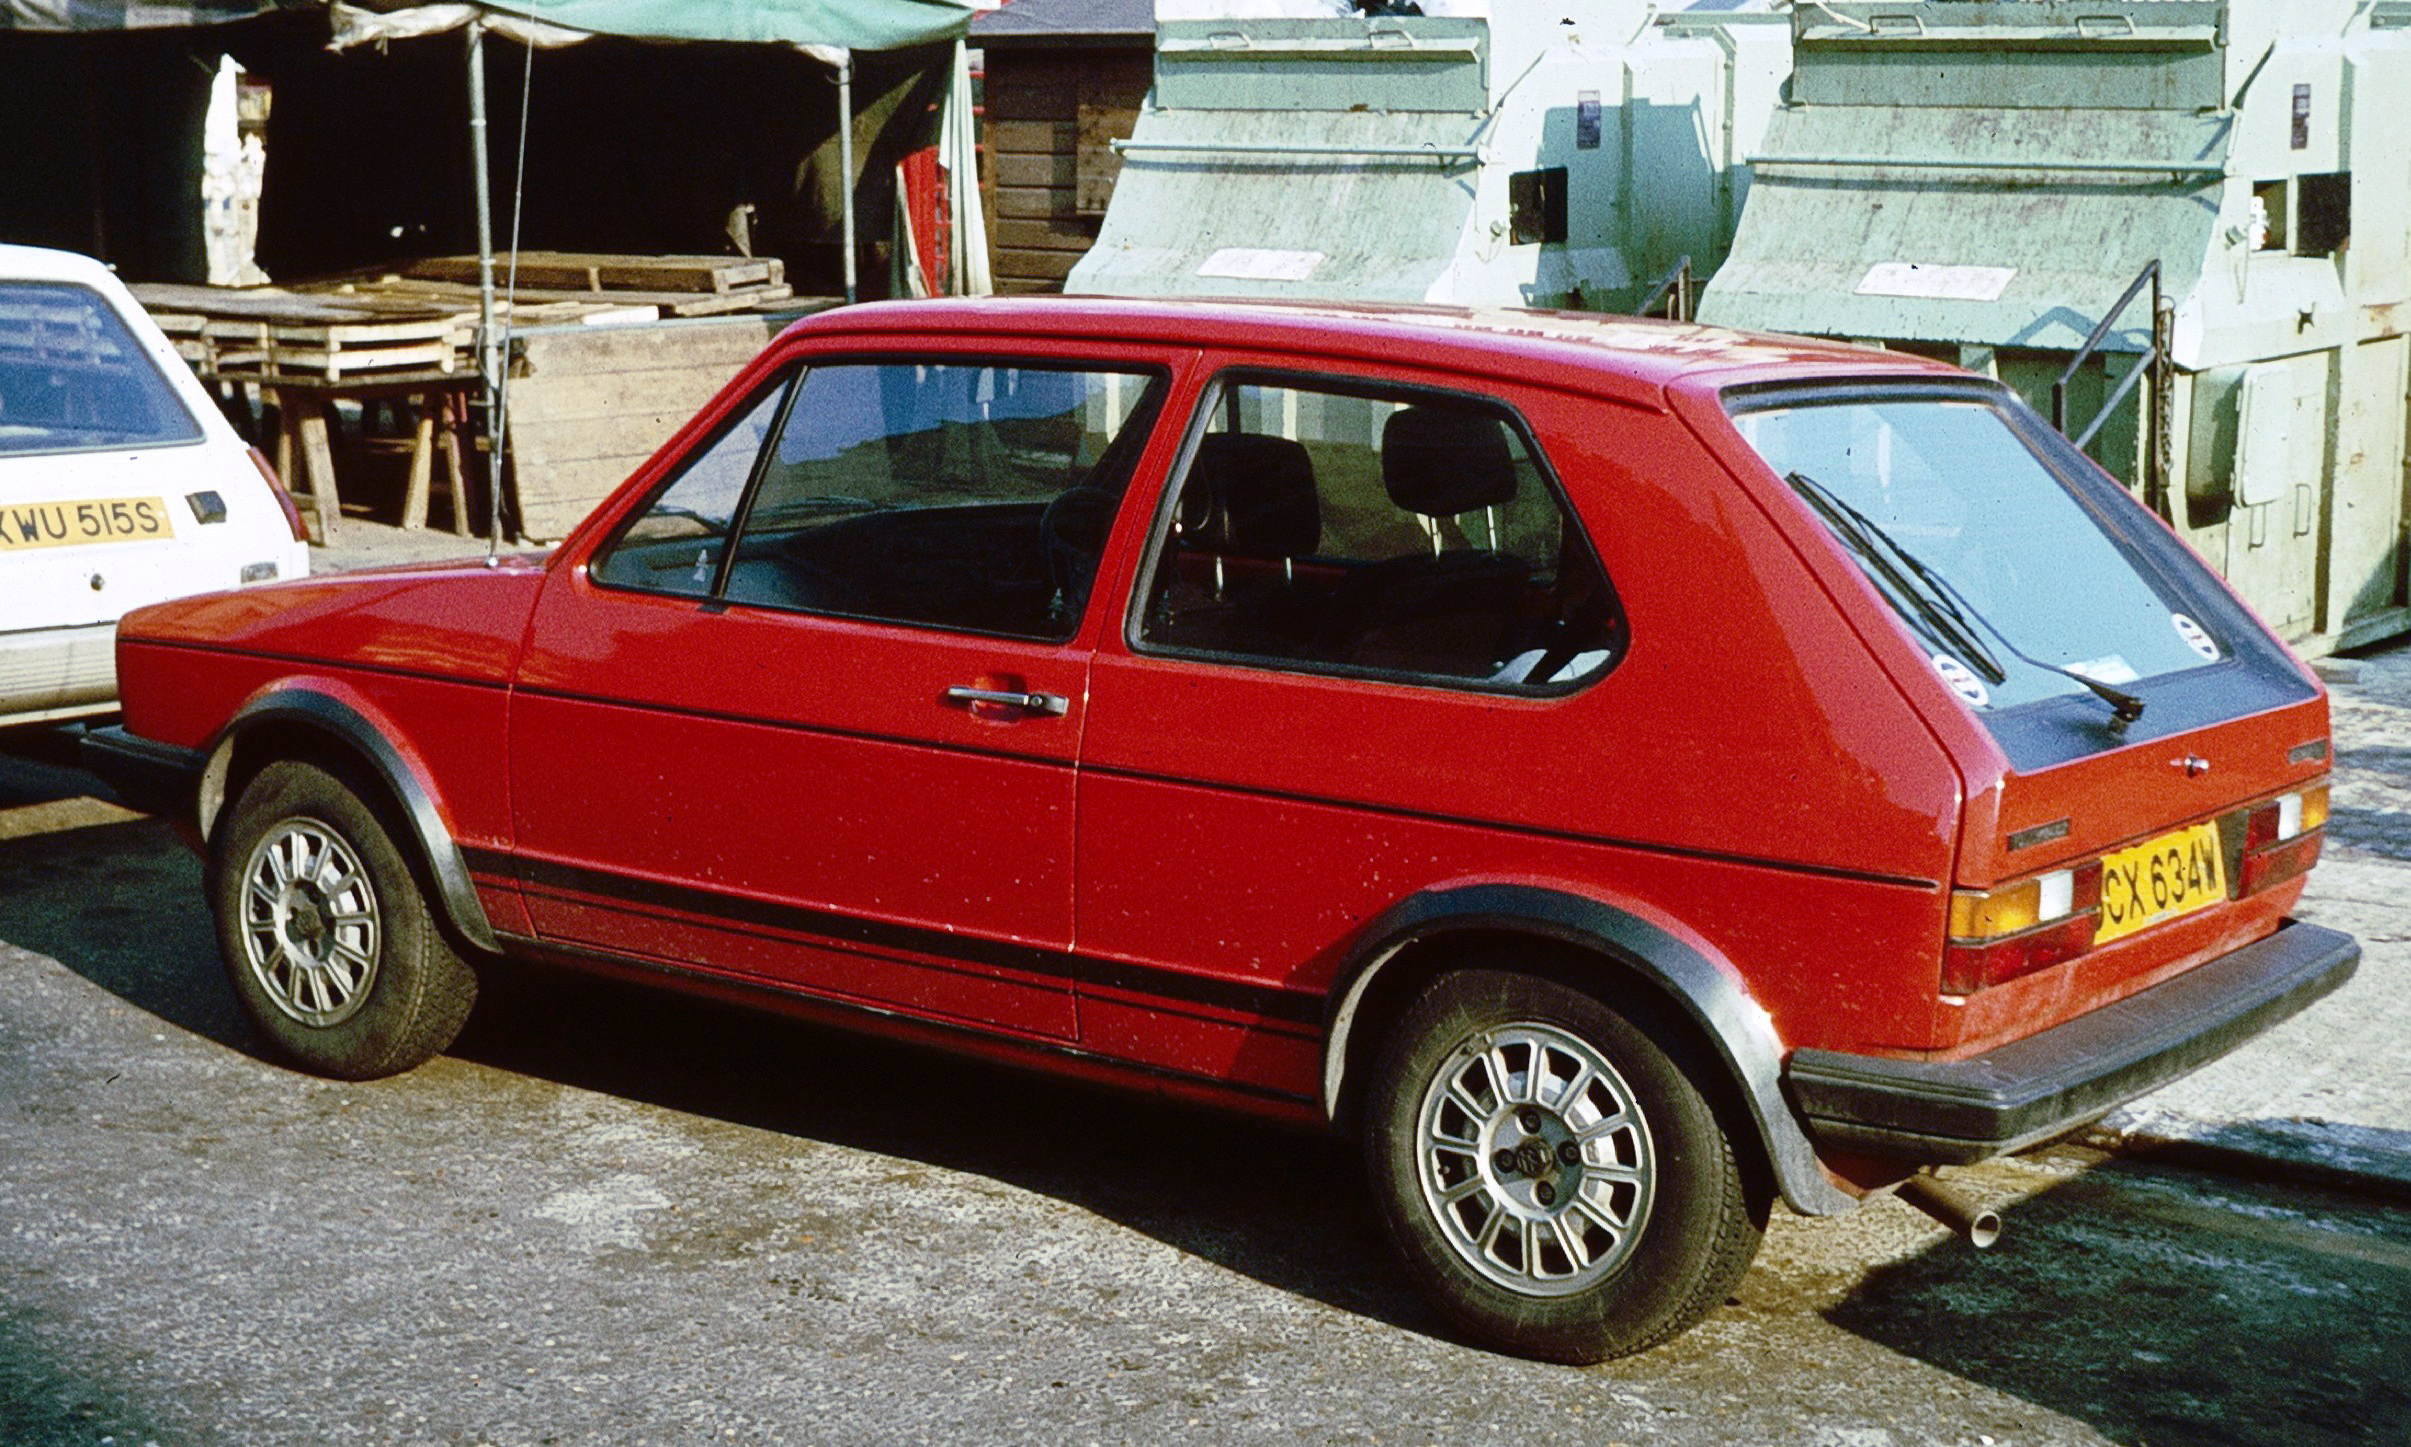 FileGolf GTI 1 Market Hill with skipsjpg